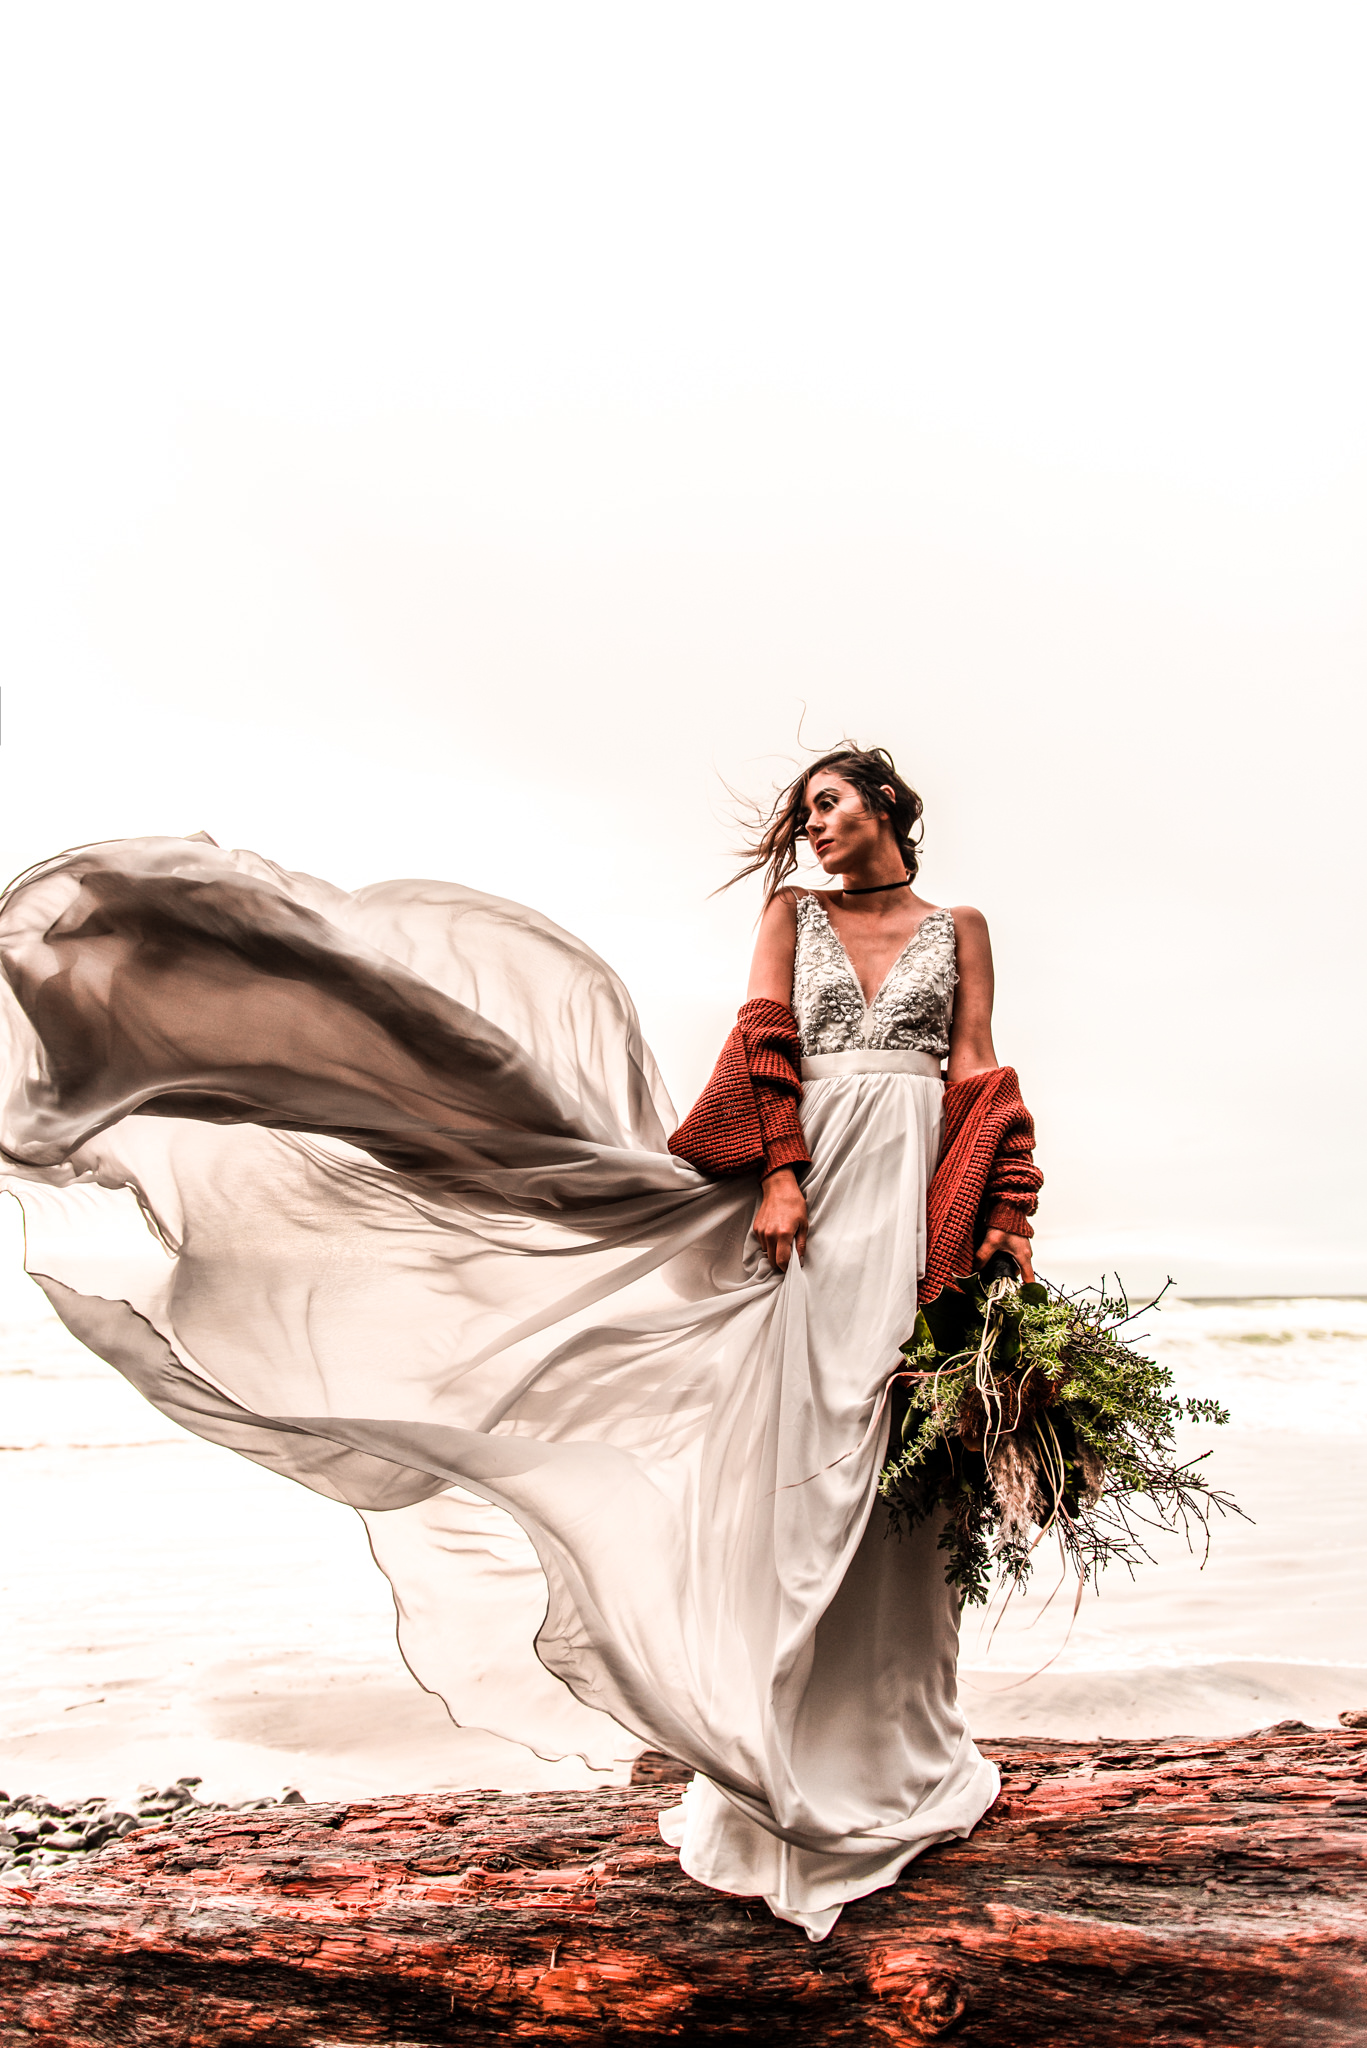 Cannon Beach OR Elopement wedding photograph